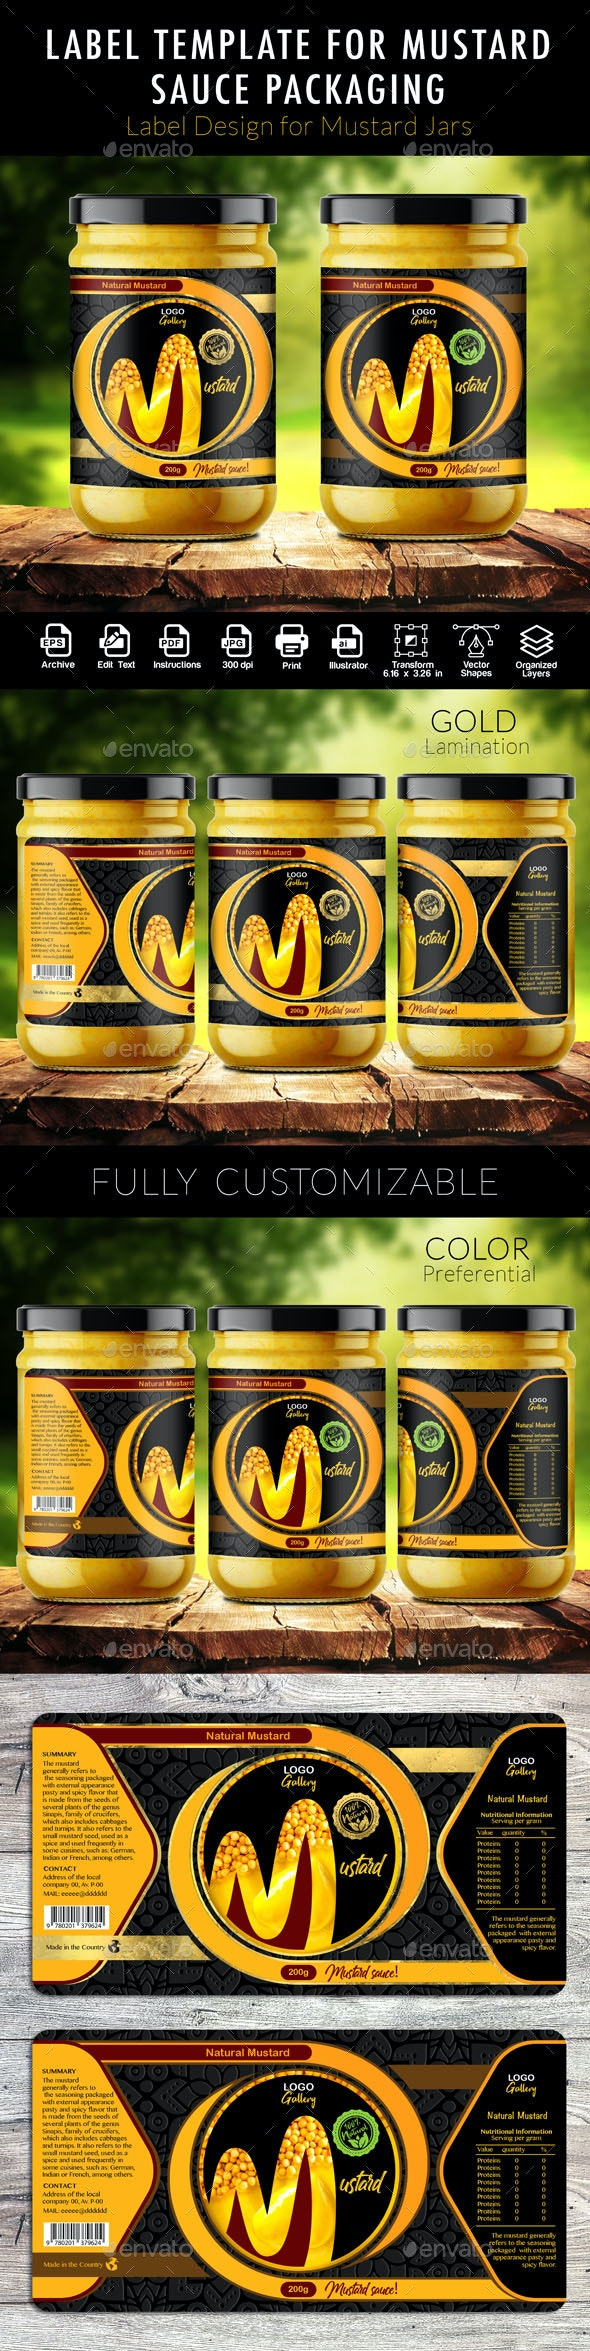 Label Template for Mustard Sauce Packaging - Packaging Print Templates